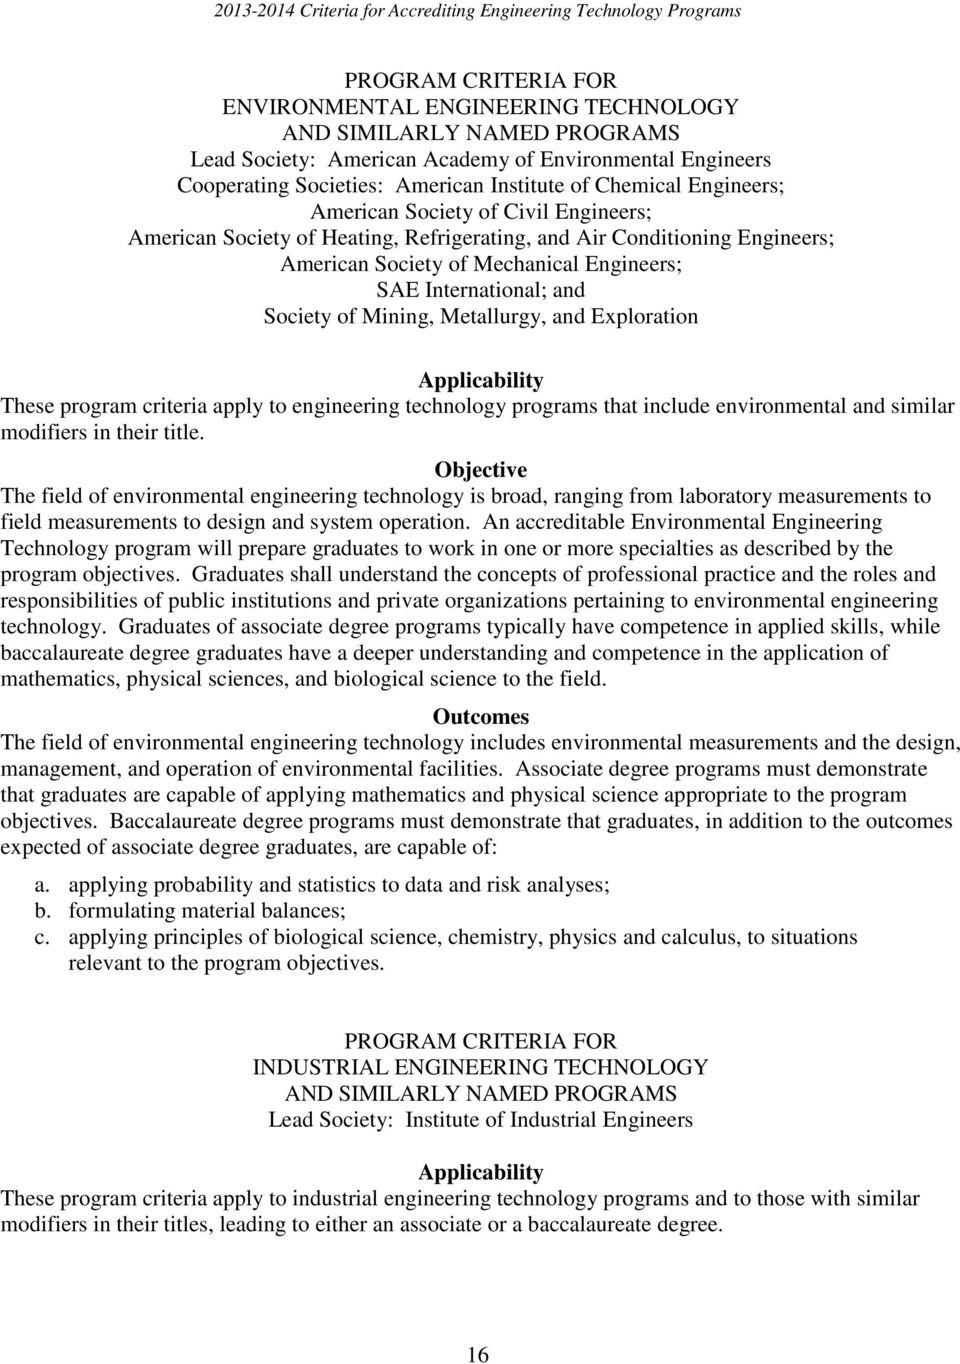 program criteria apply to engineering technology programs that include environmental and similar modifiers in their title.